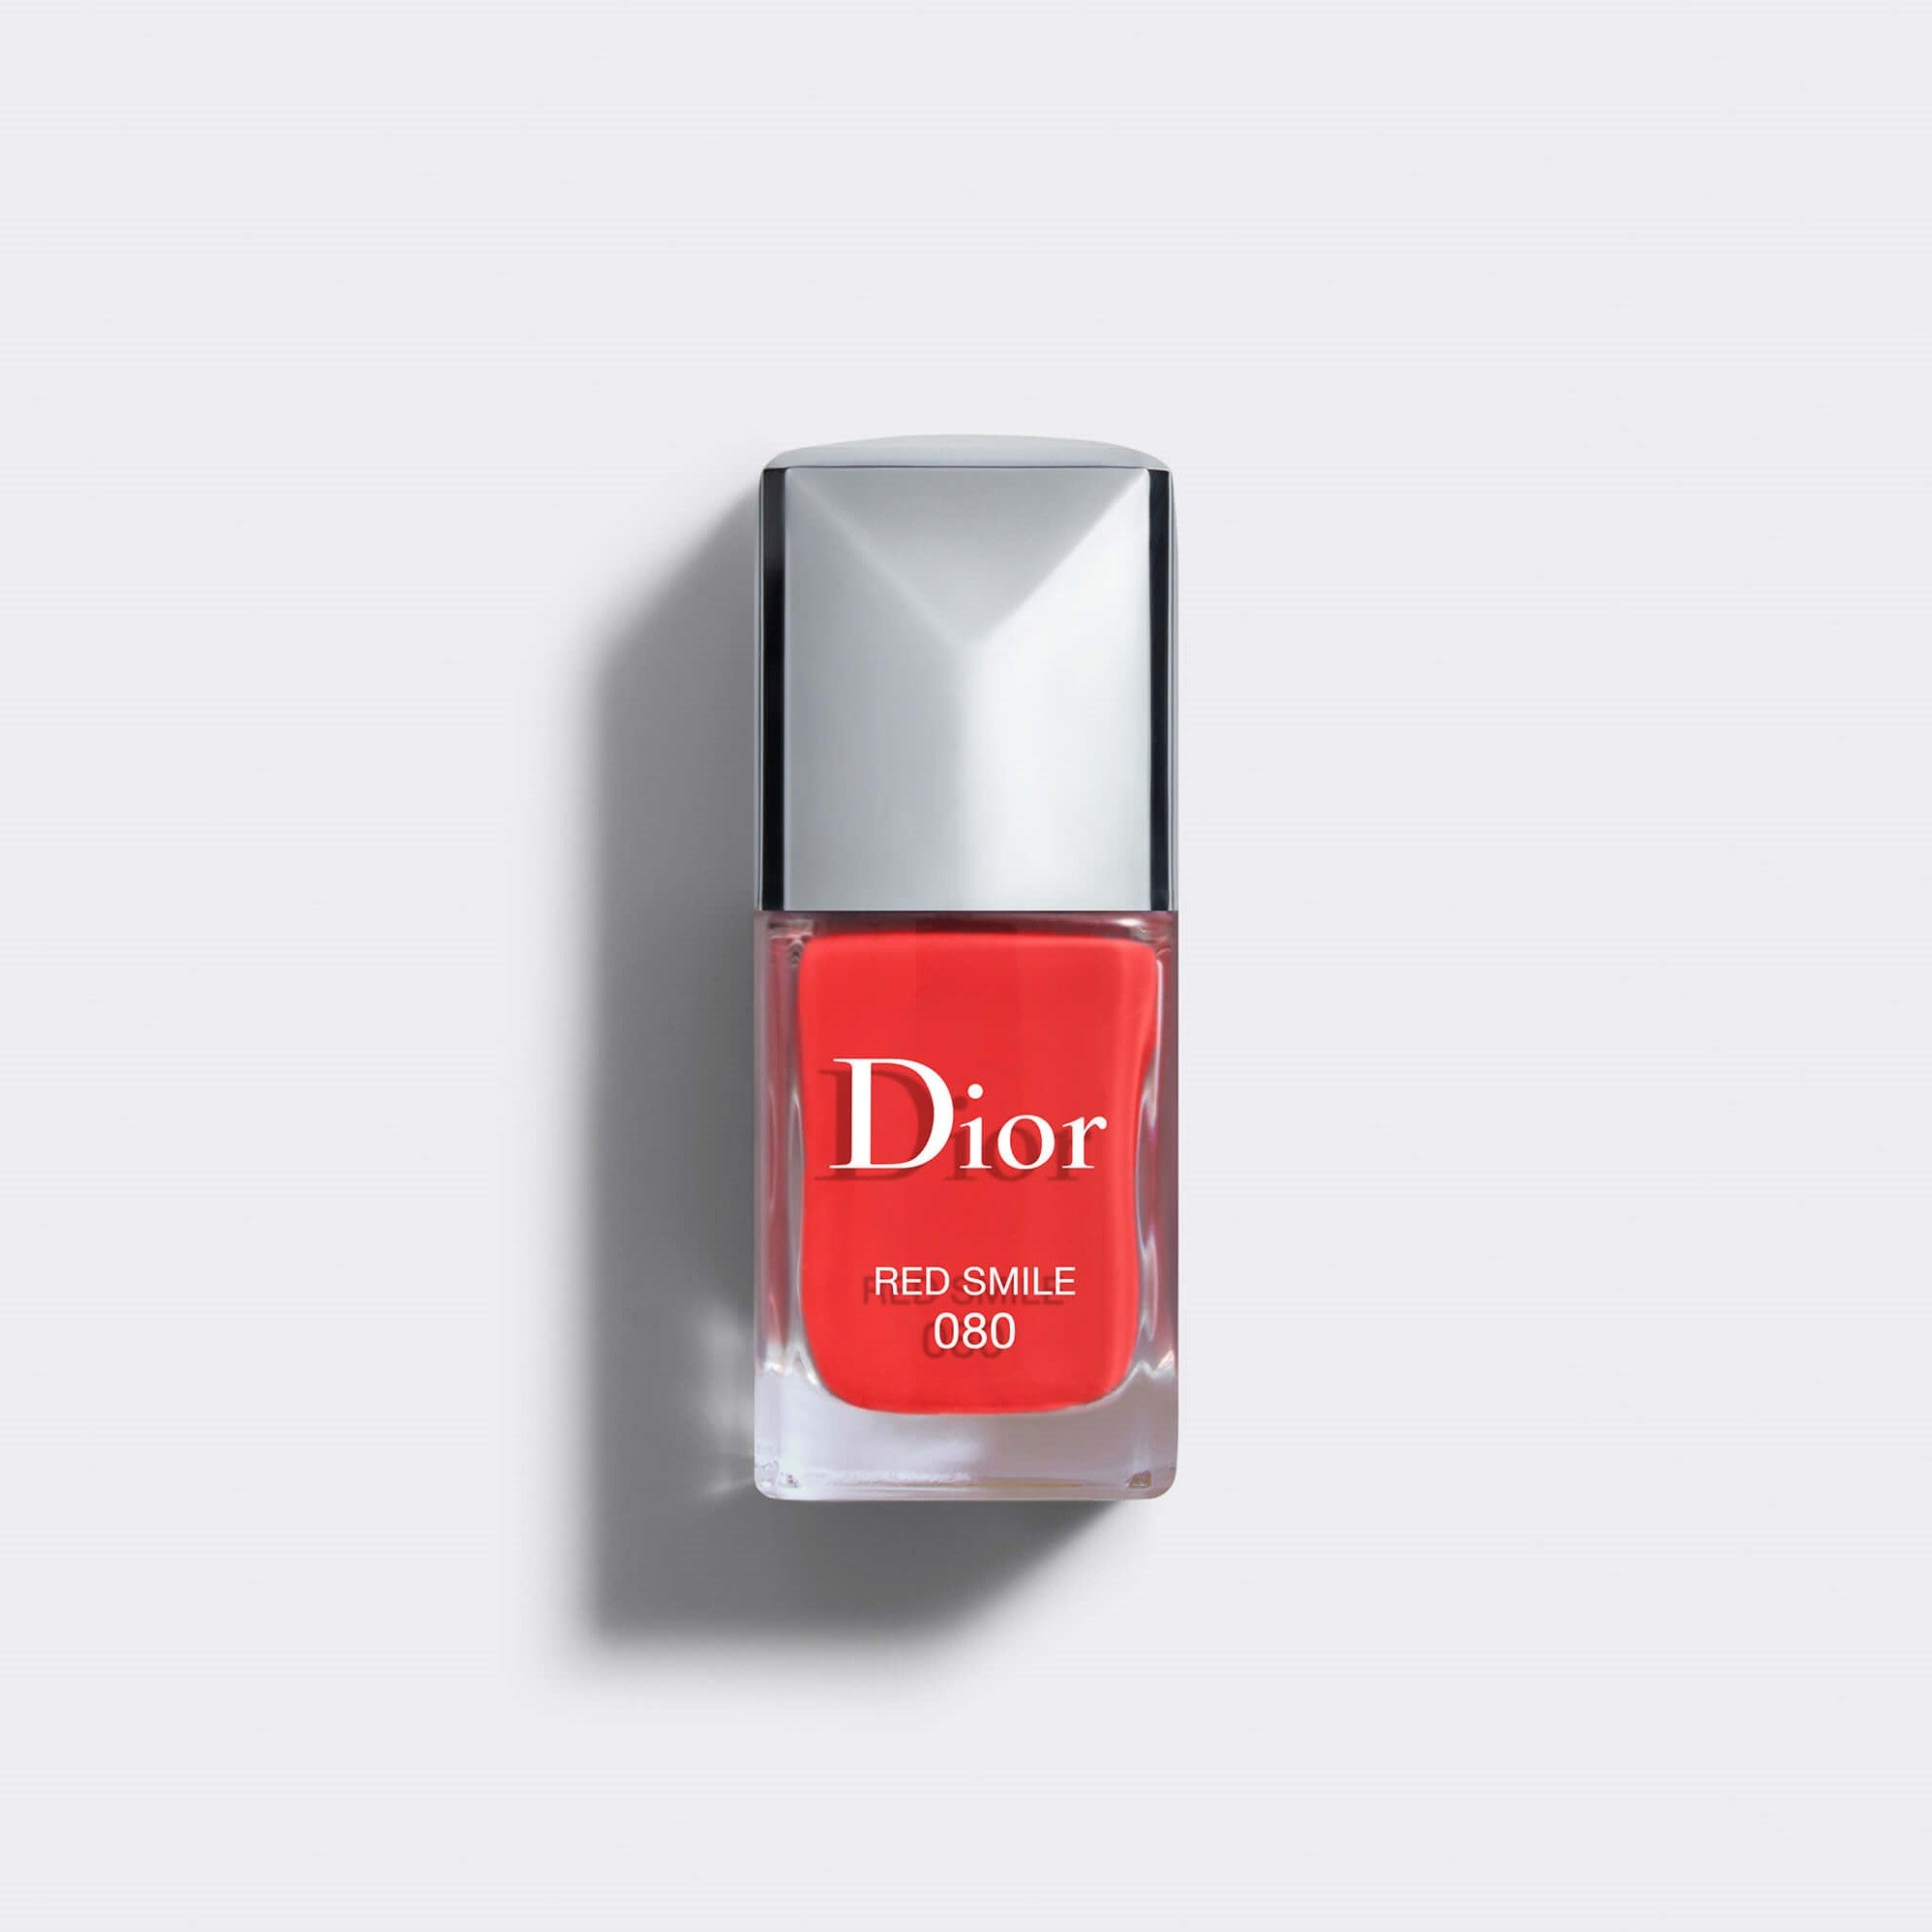 DIOR VERNIS | Couture colour, gel shine, long wear